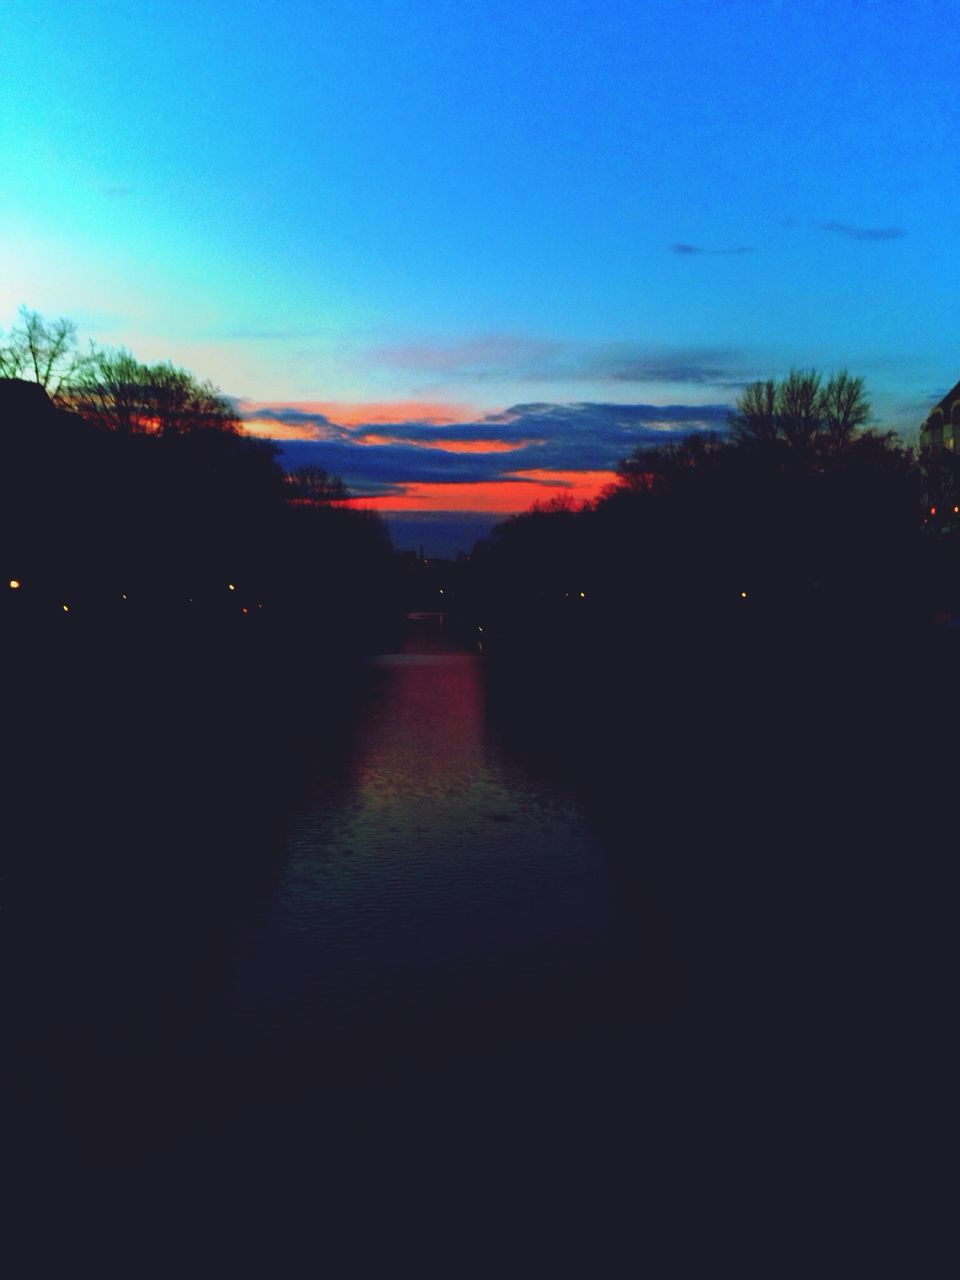 Canal Amidst Silhouette Trees Against Sky At Dusk